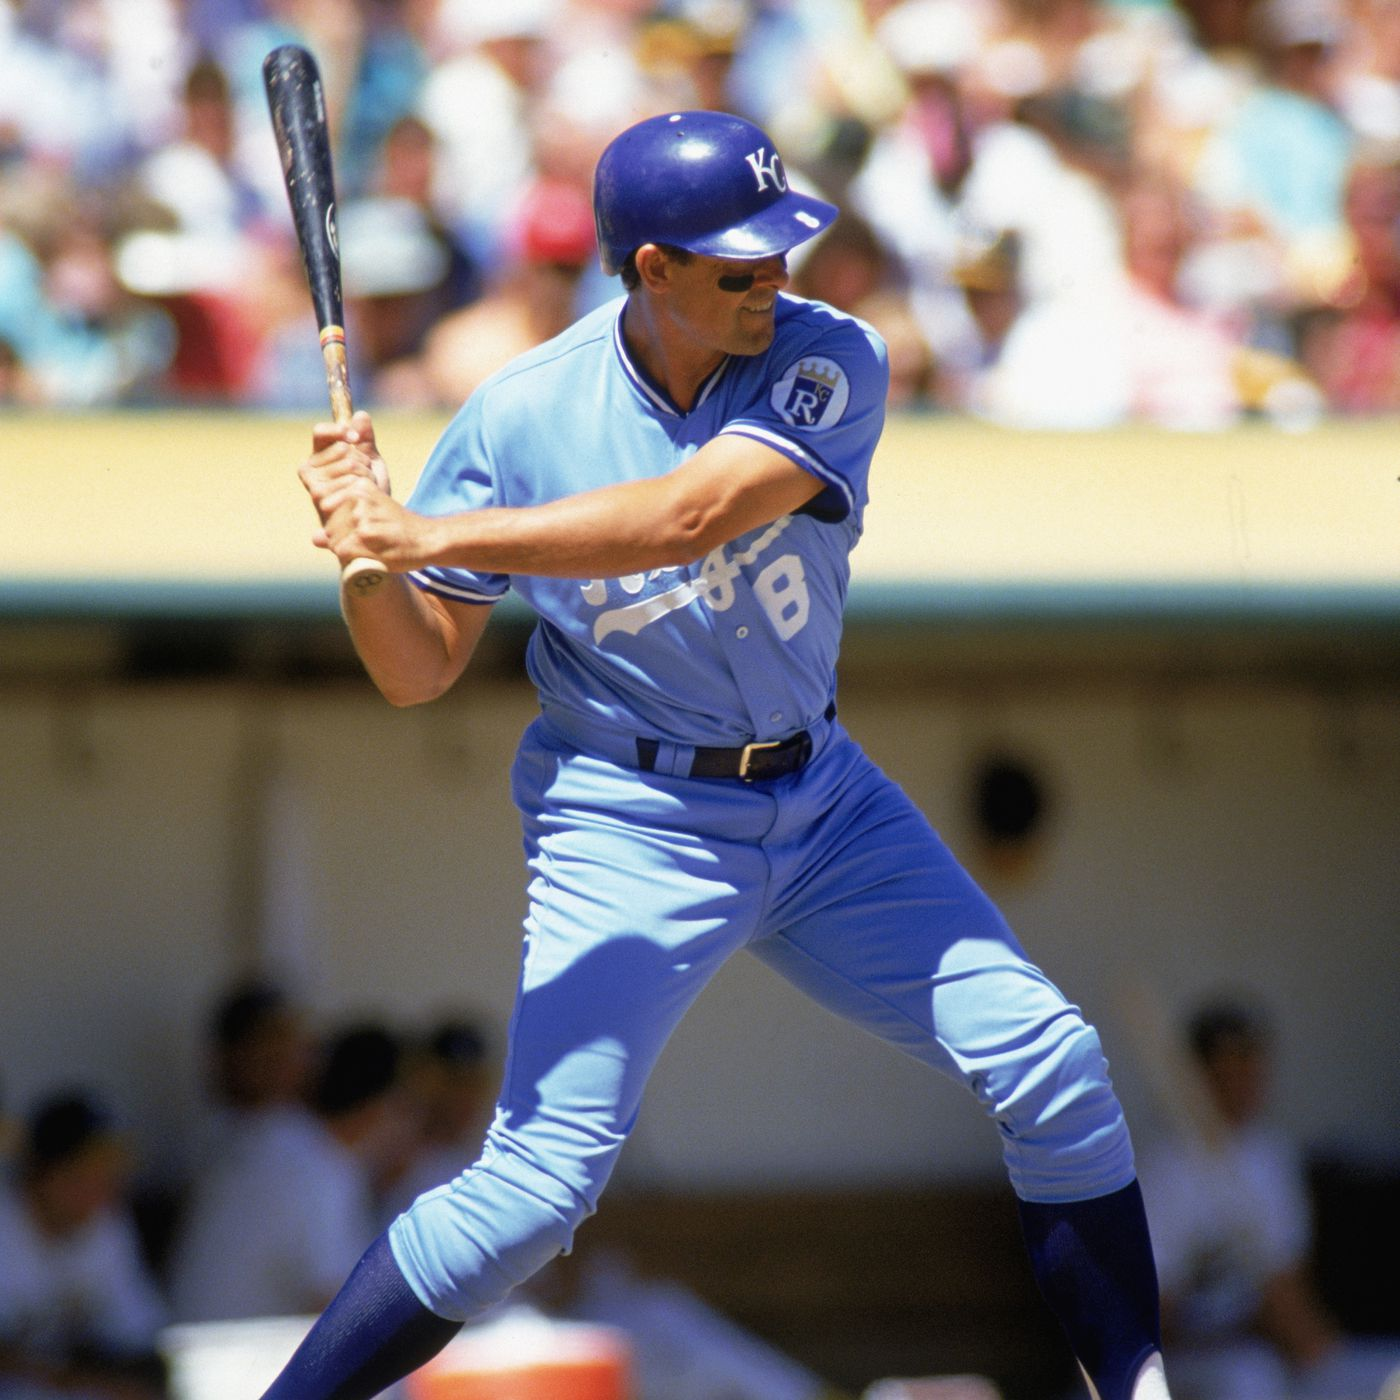 More old stars who played for the Royals in the late 80s - Royals Review